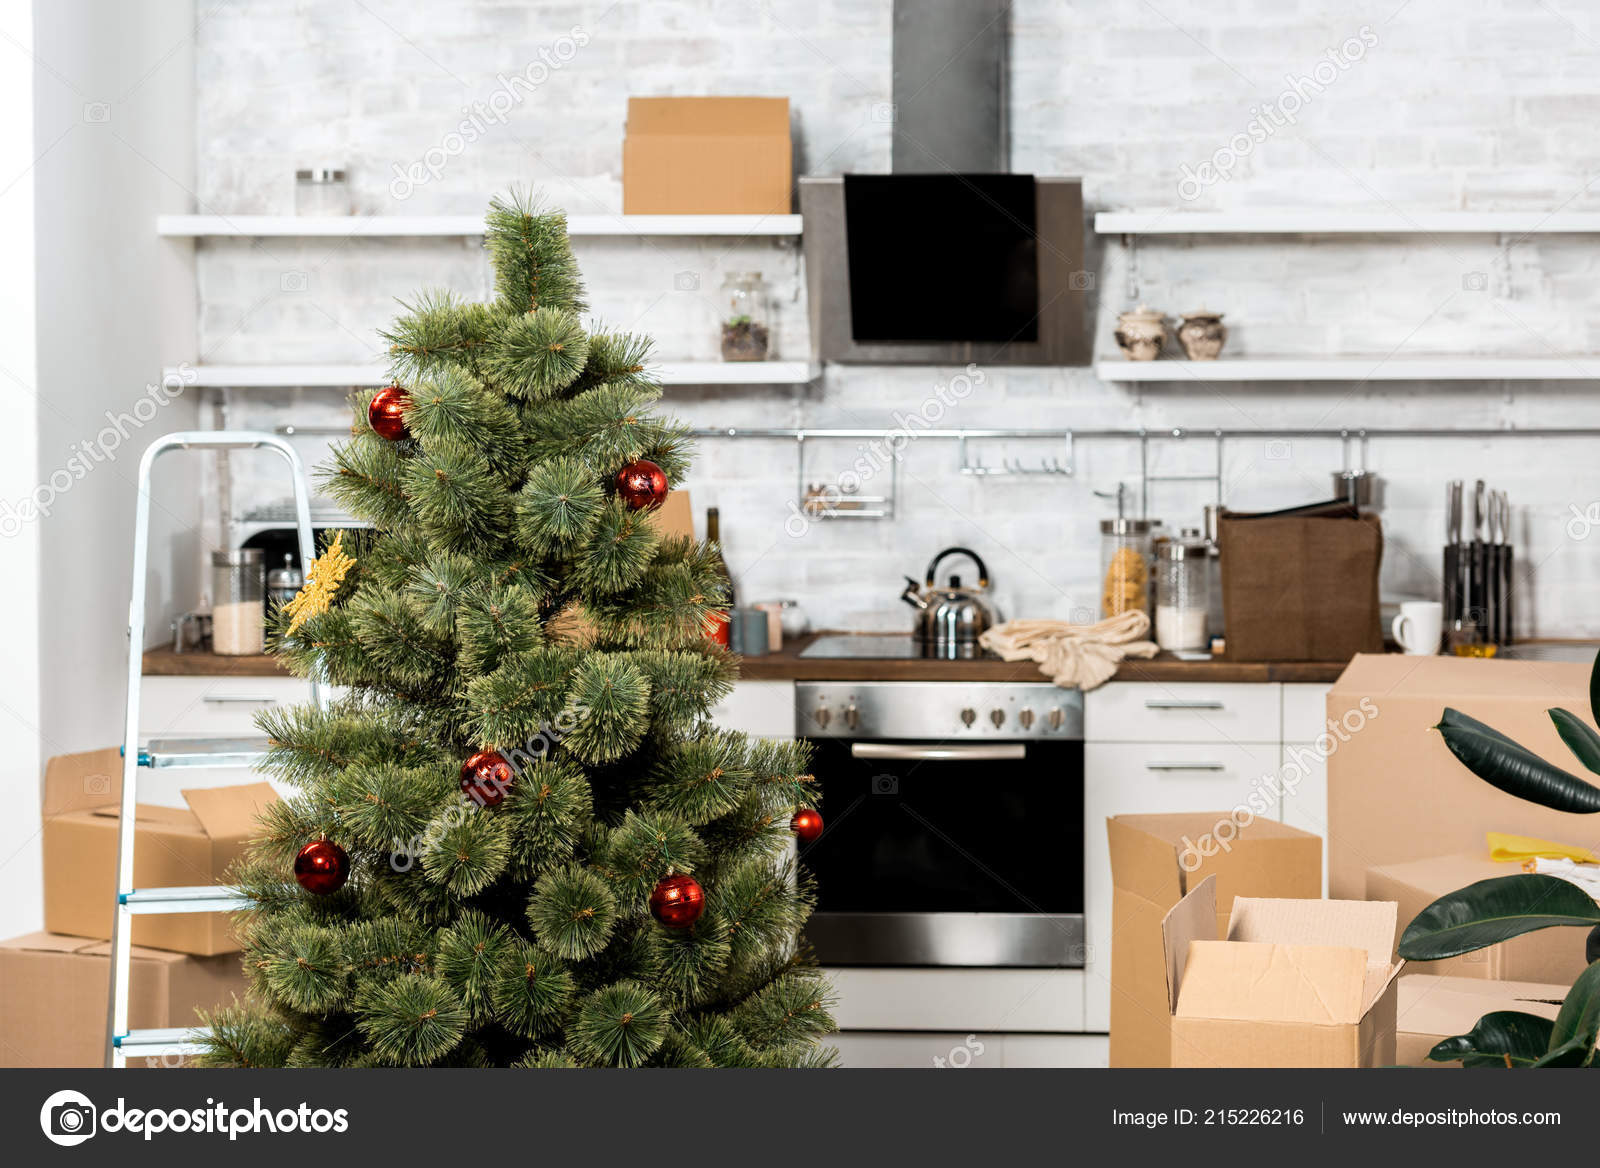 Interior Kitchen Decorated Christmas Tree Cardboard Boxes Relocation